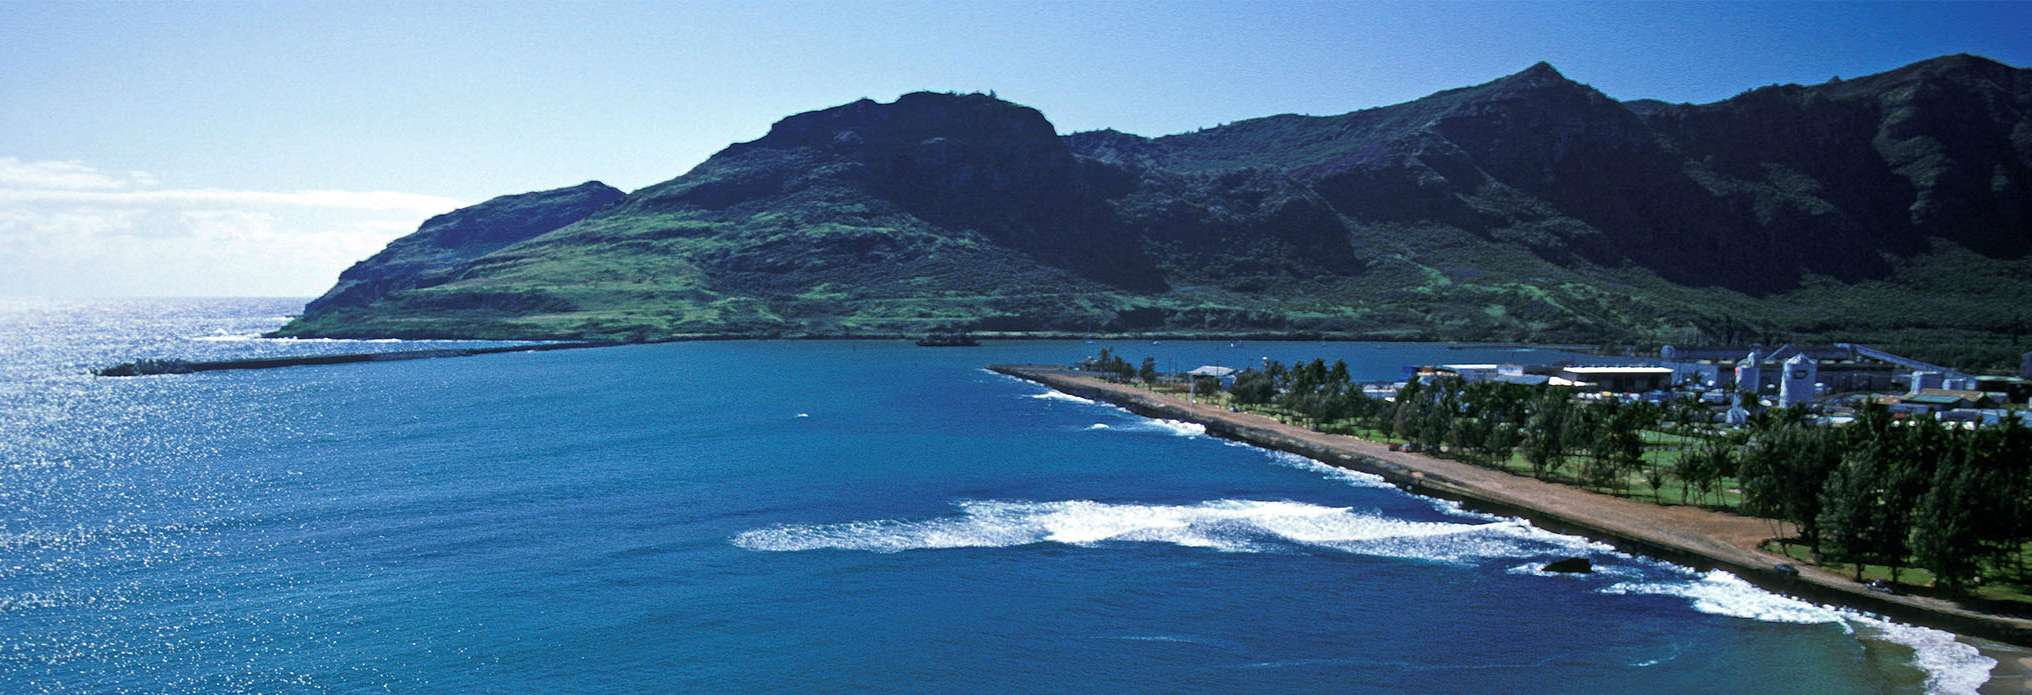 Scene of Hawaiian Sea Port and Mountain